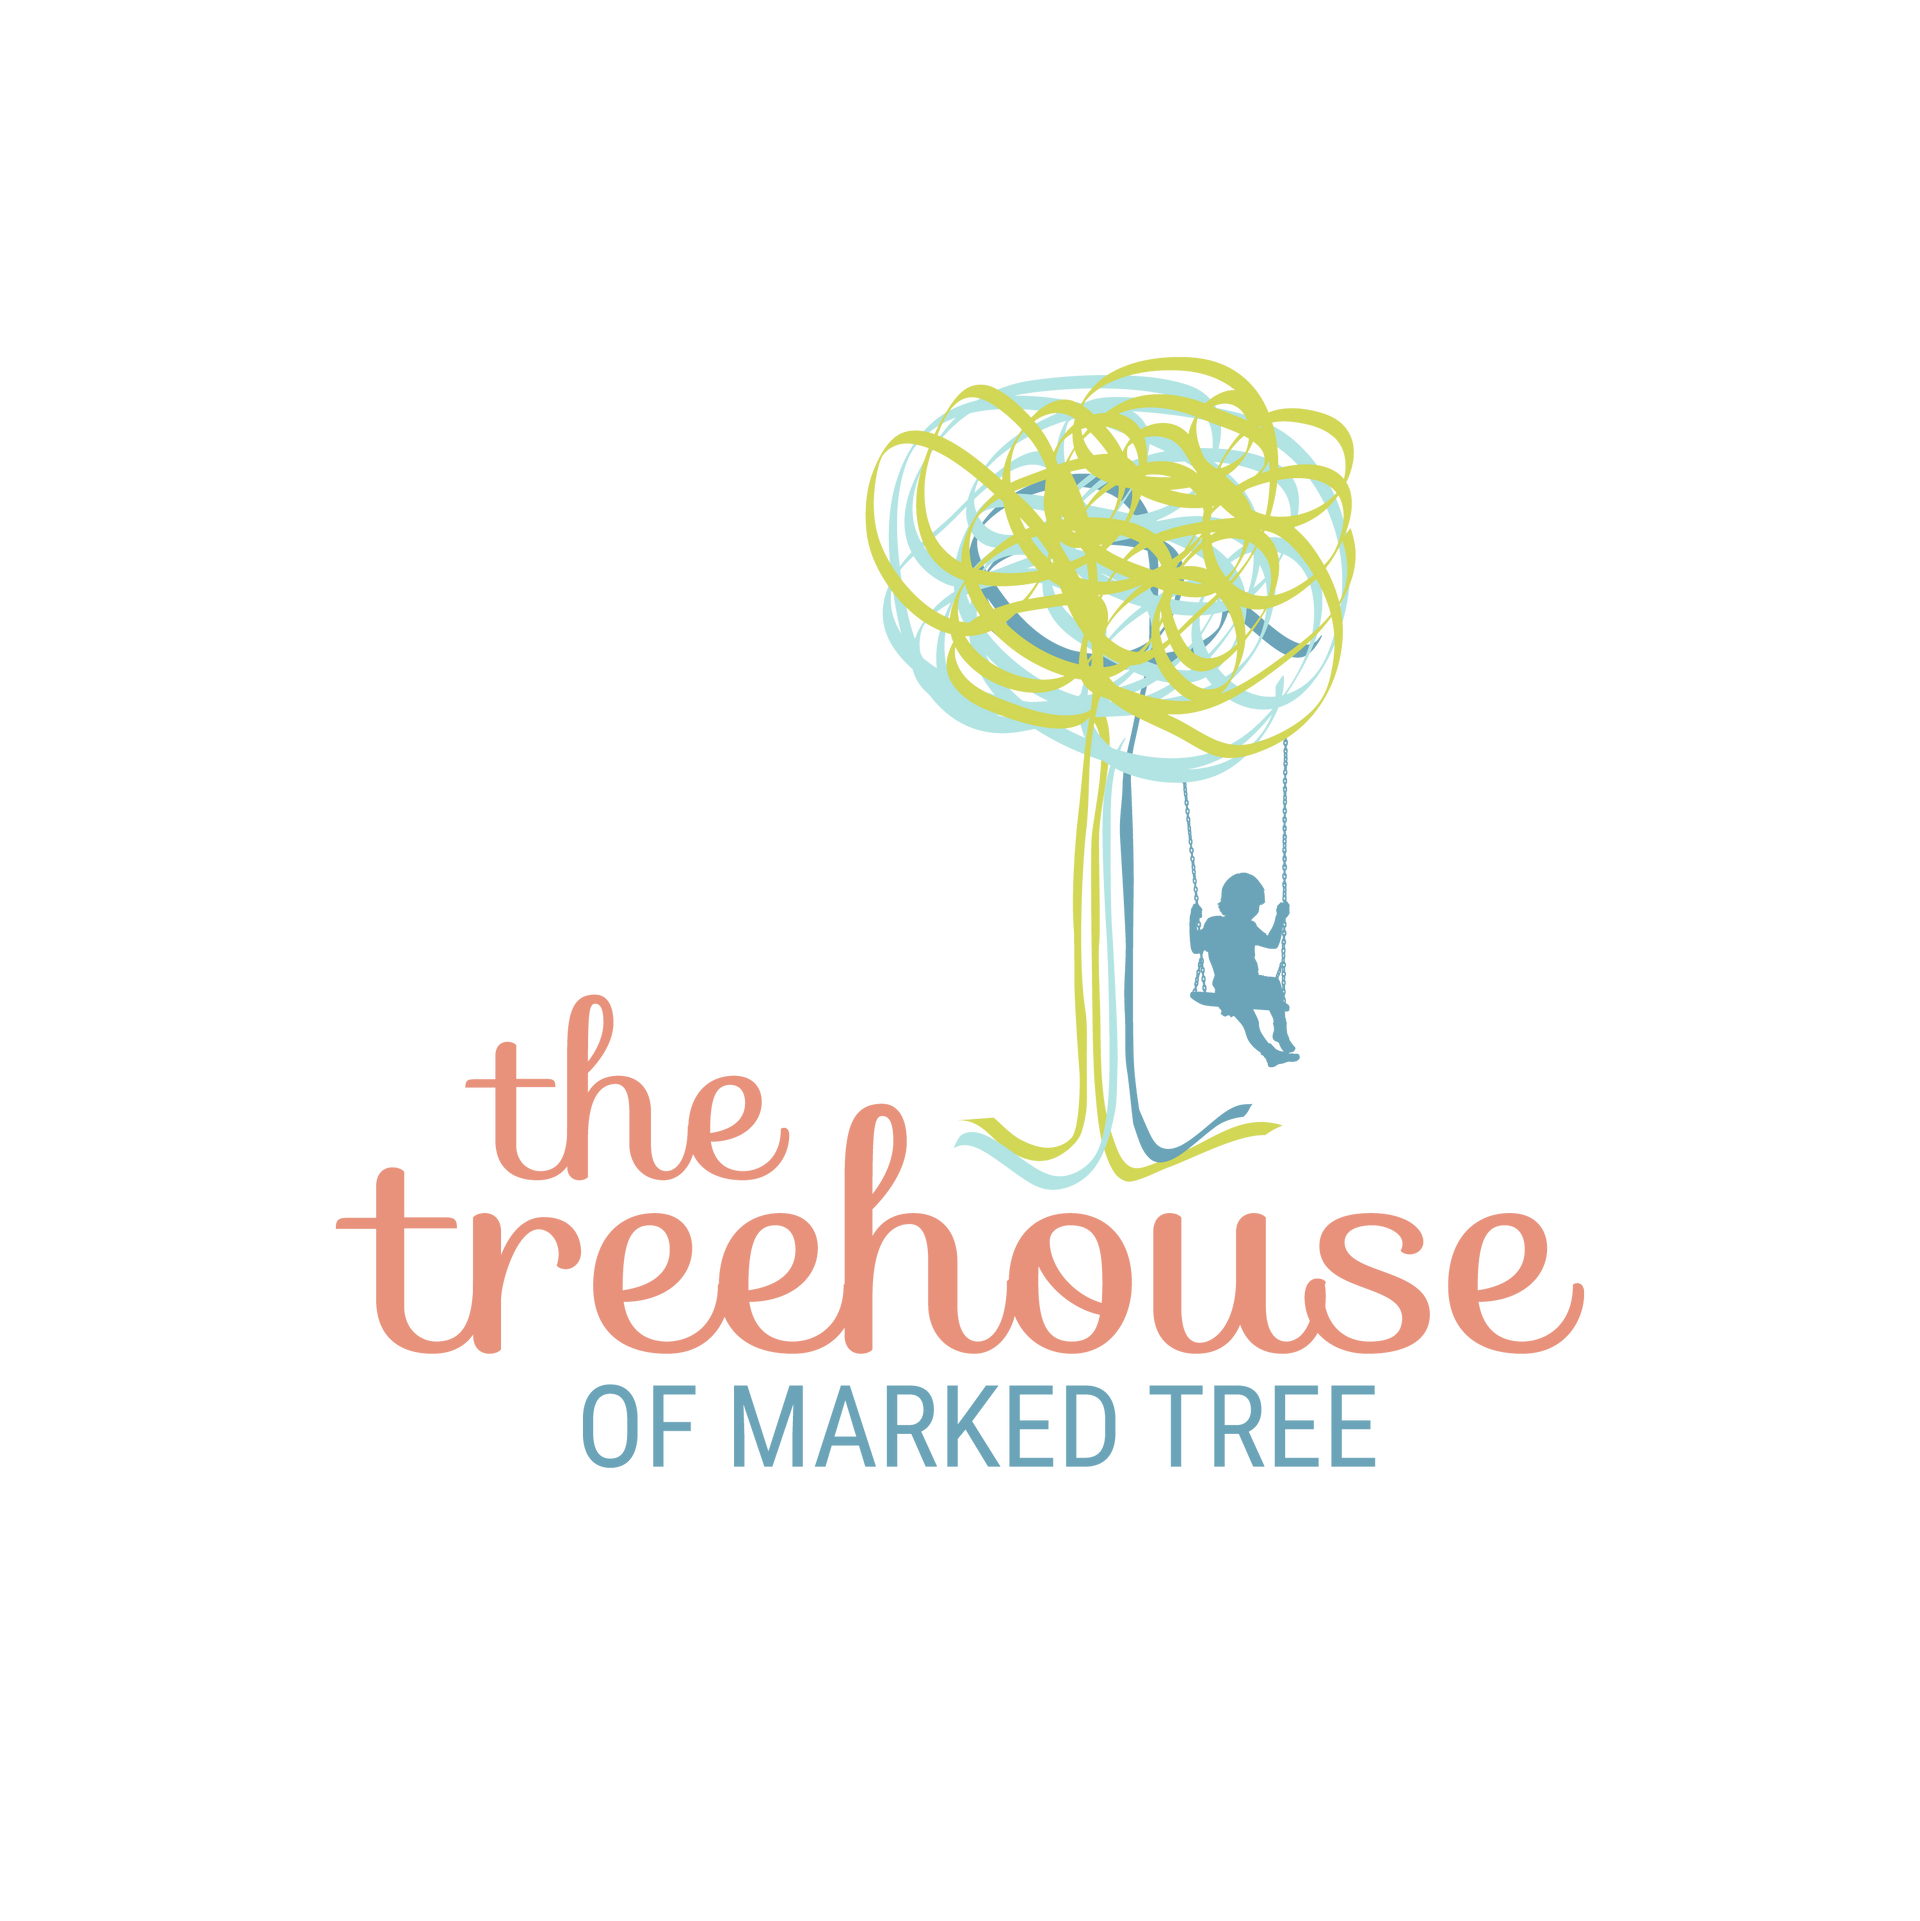 The Treehouse of Marked Tree